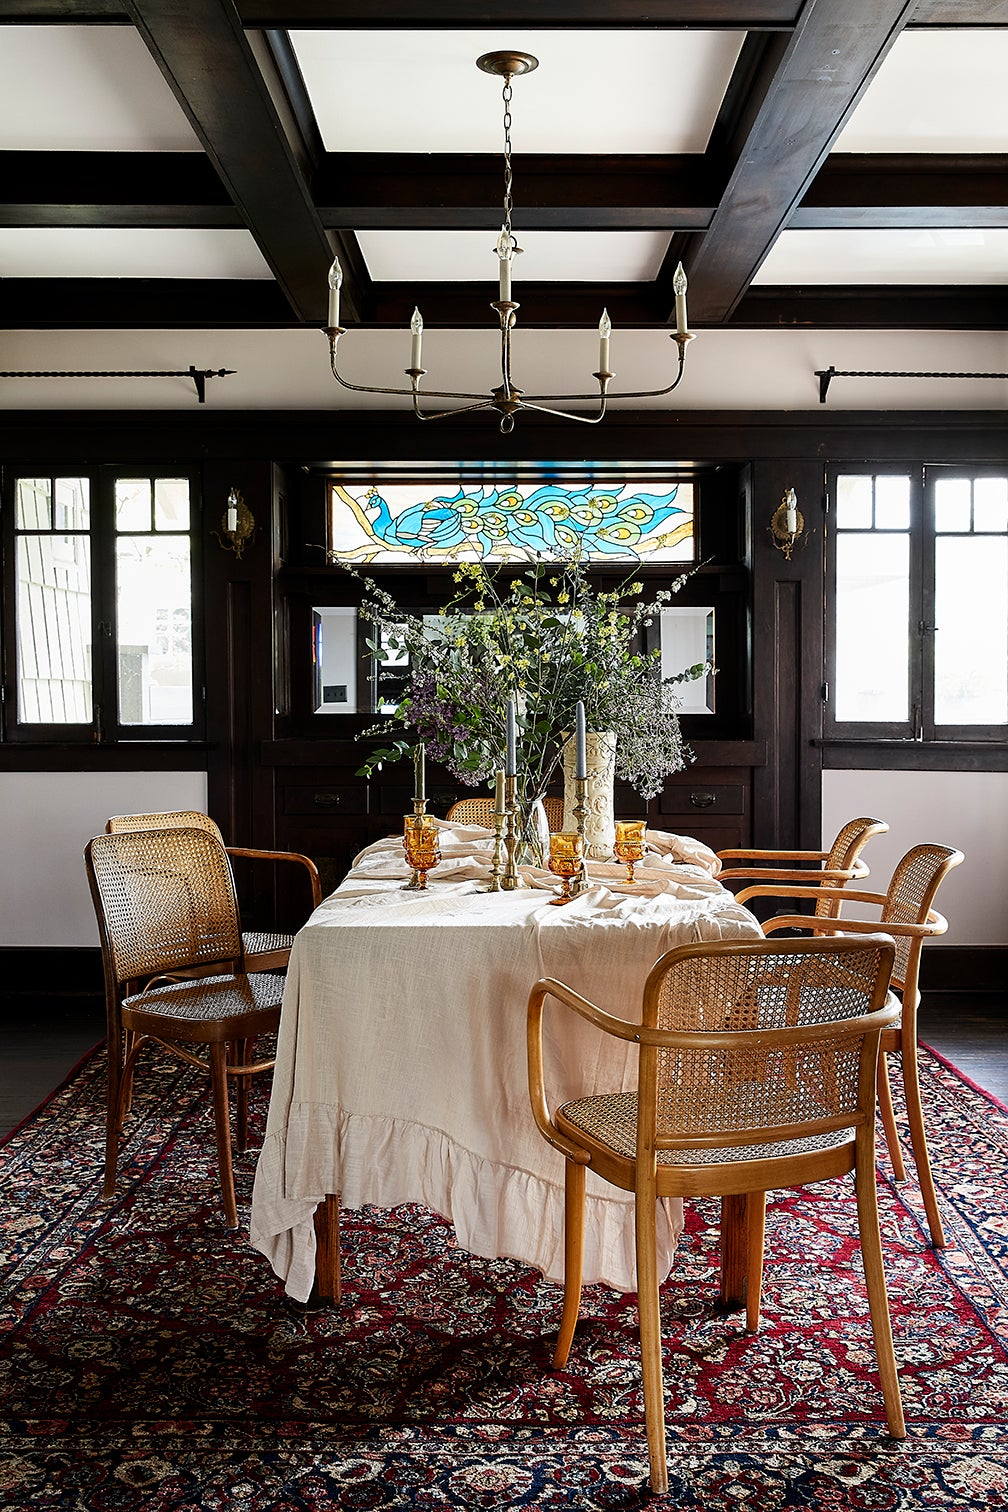 cane chairs around table